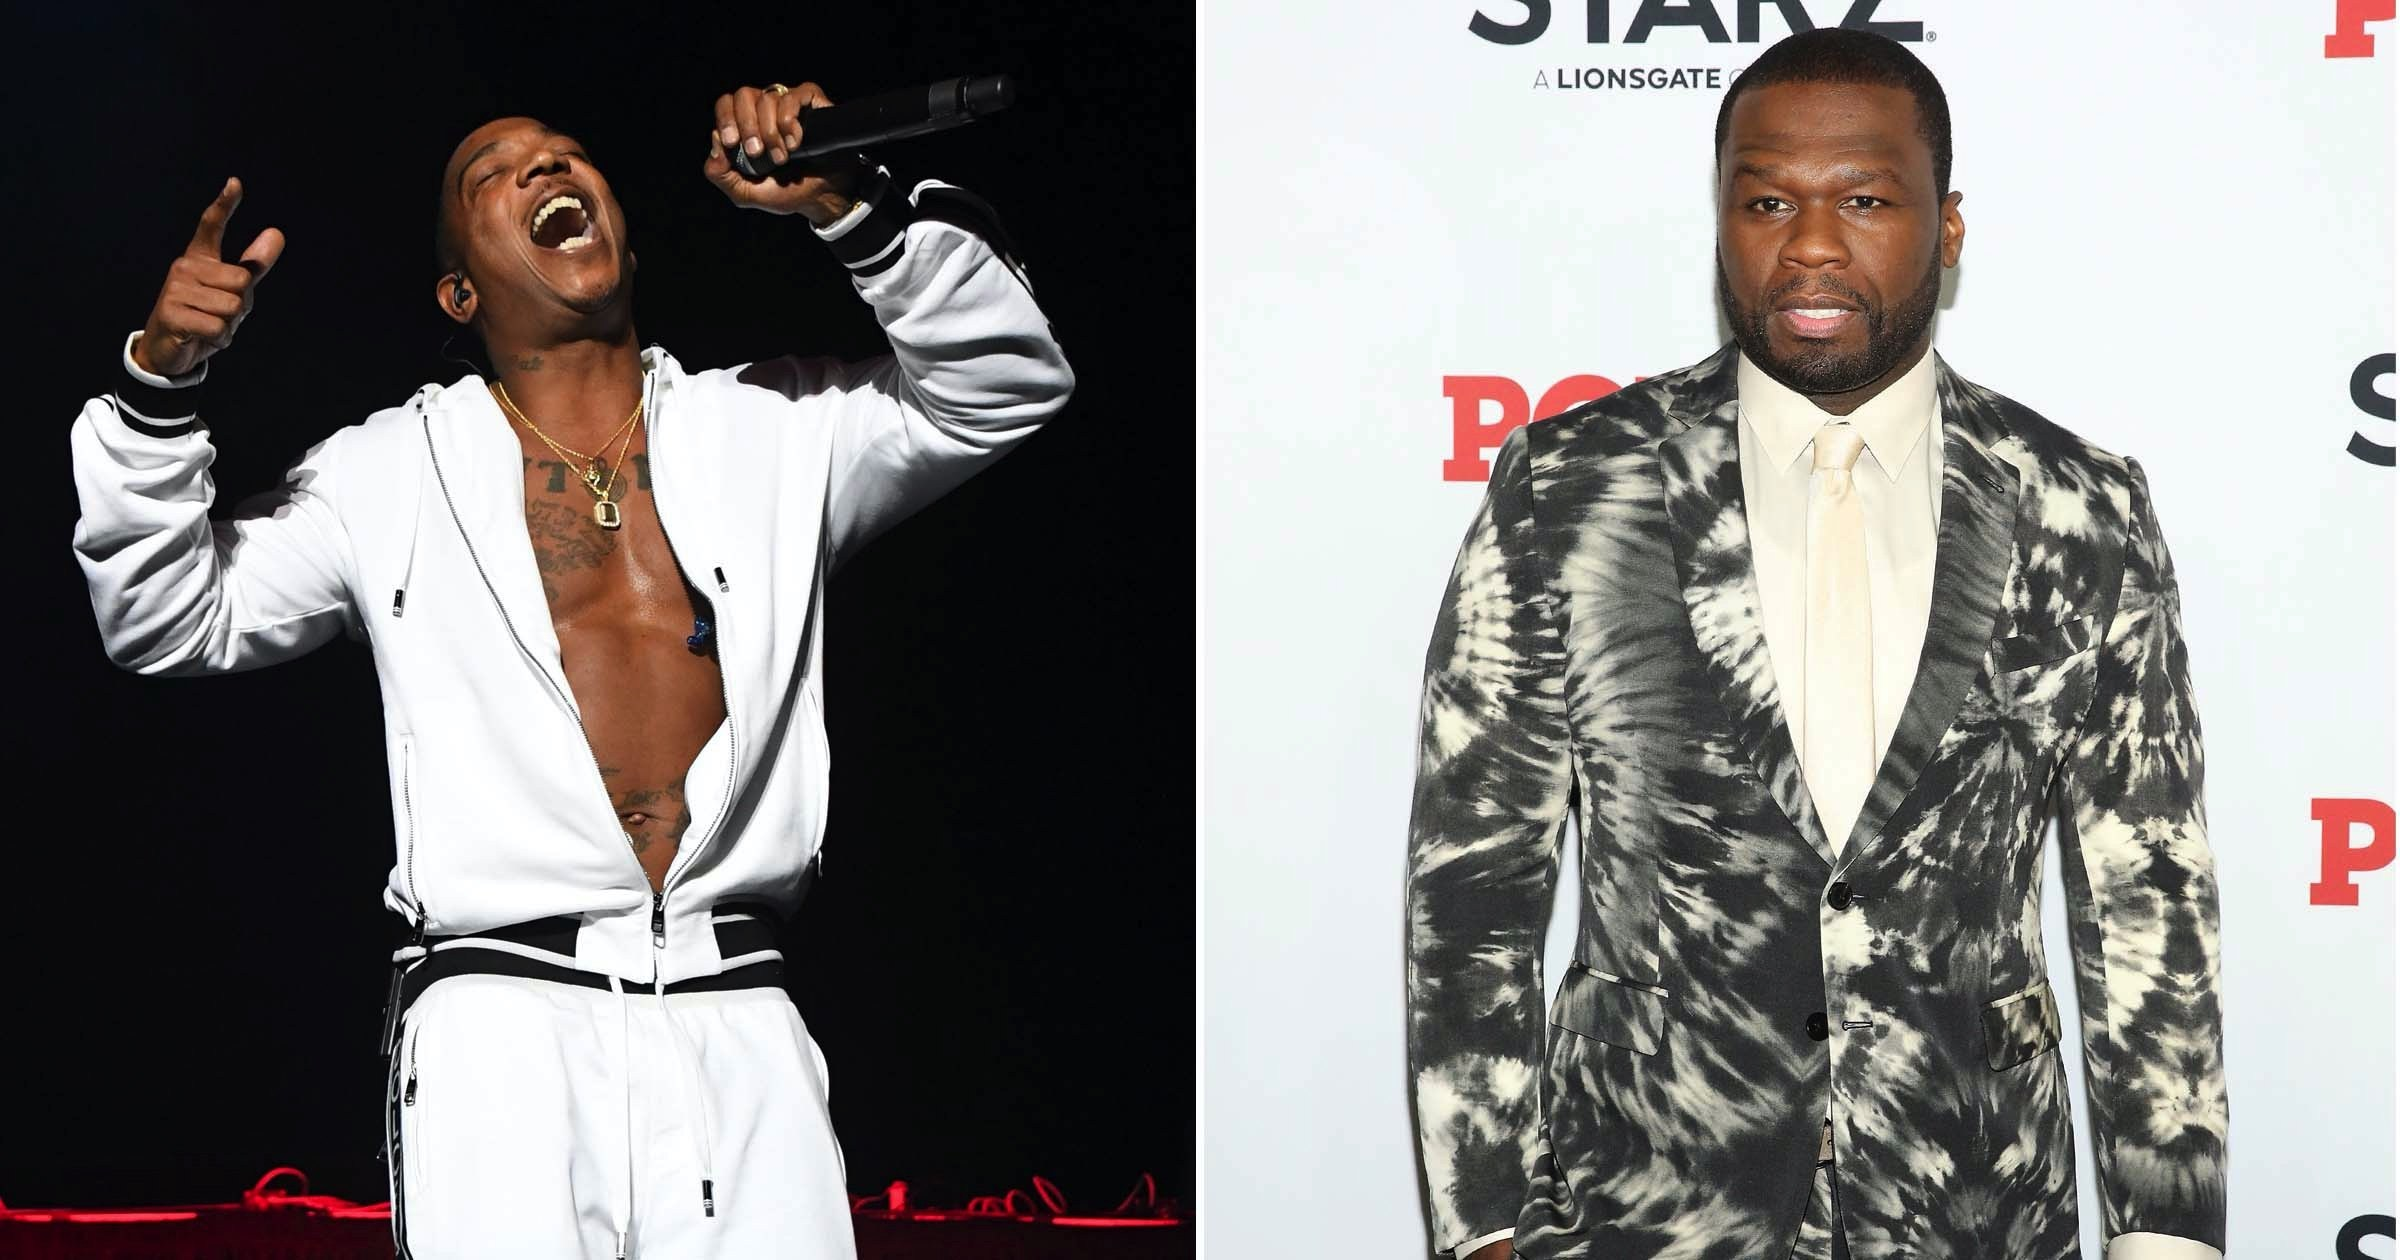 The entire history of 50 Cent and Ja Rule's long-running feud as the hip hop stars beef again